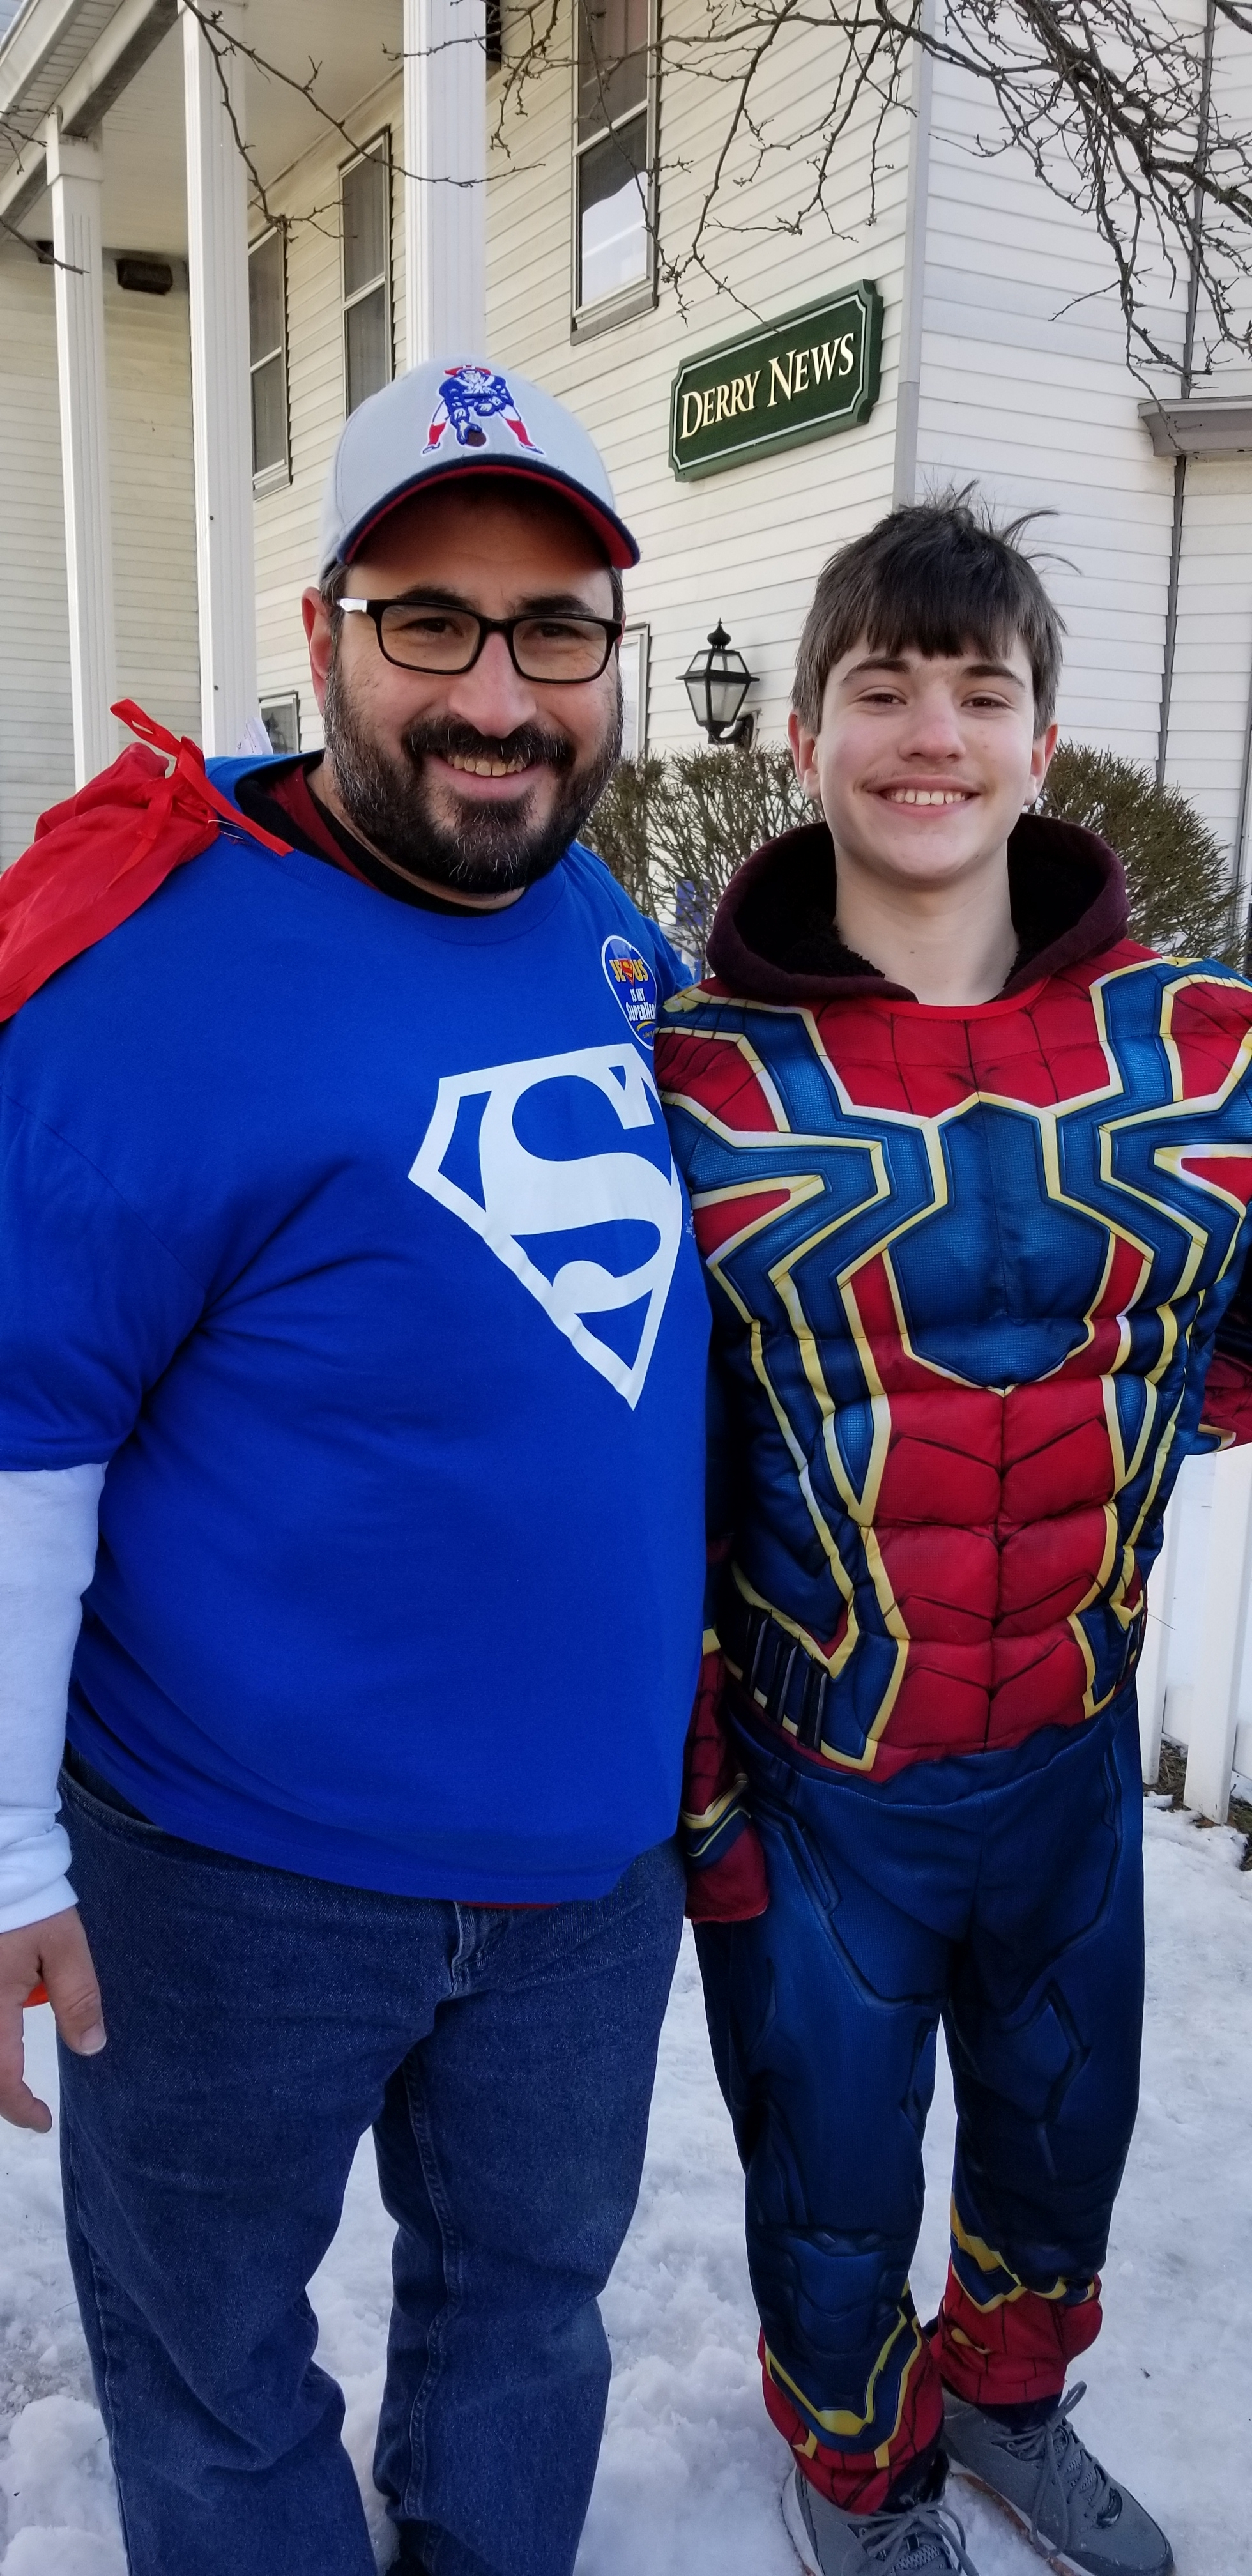 Derry, NH, had a town Christmas Parade and the theme of our Church's float was 'Jesus Is Our Superhero.' My son, Caleb, and I participated by walking the route and handing out invitations to our Christmas Service. Our Church handed out 4,000 invitations that afternoon! Please pray that God will water those seeds and unchurched people will come to Christ as a result!